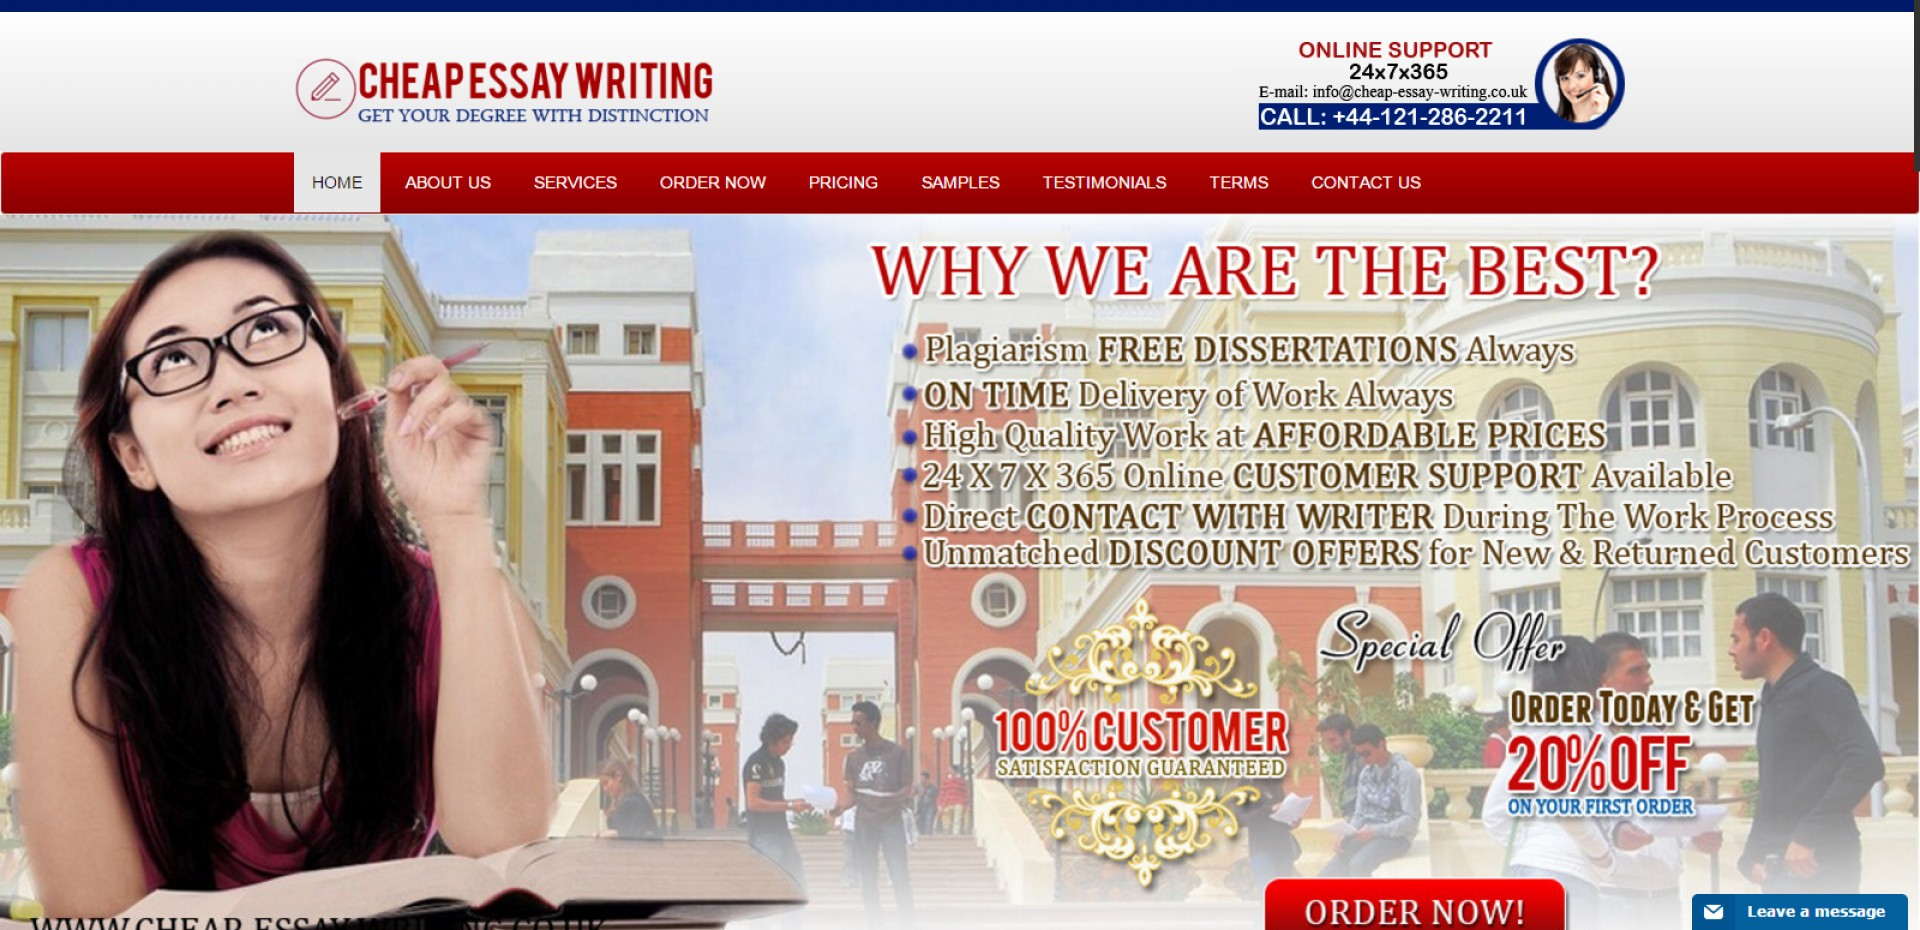 019 Essay Example Cheap Writing Services Uk Dreaded Custom Meister Discount Code Service Reviews 1920